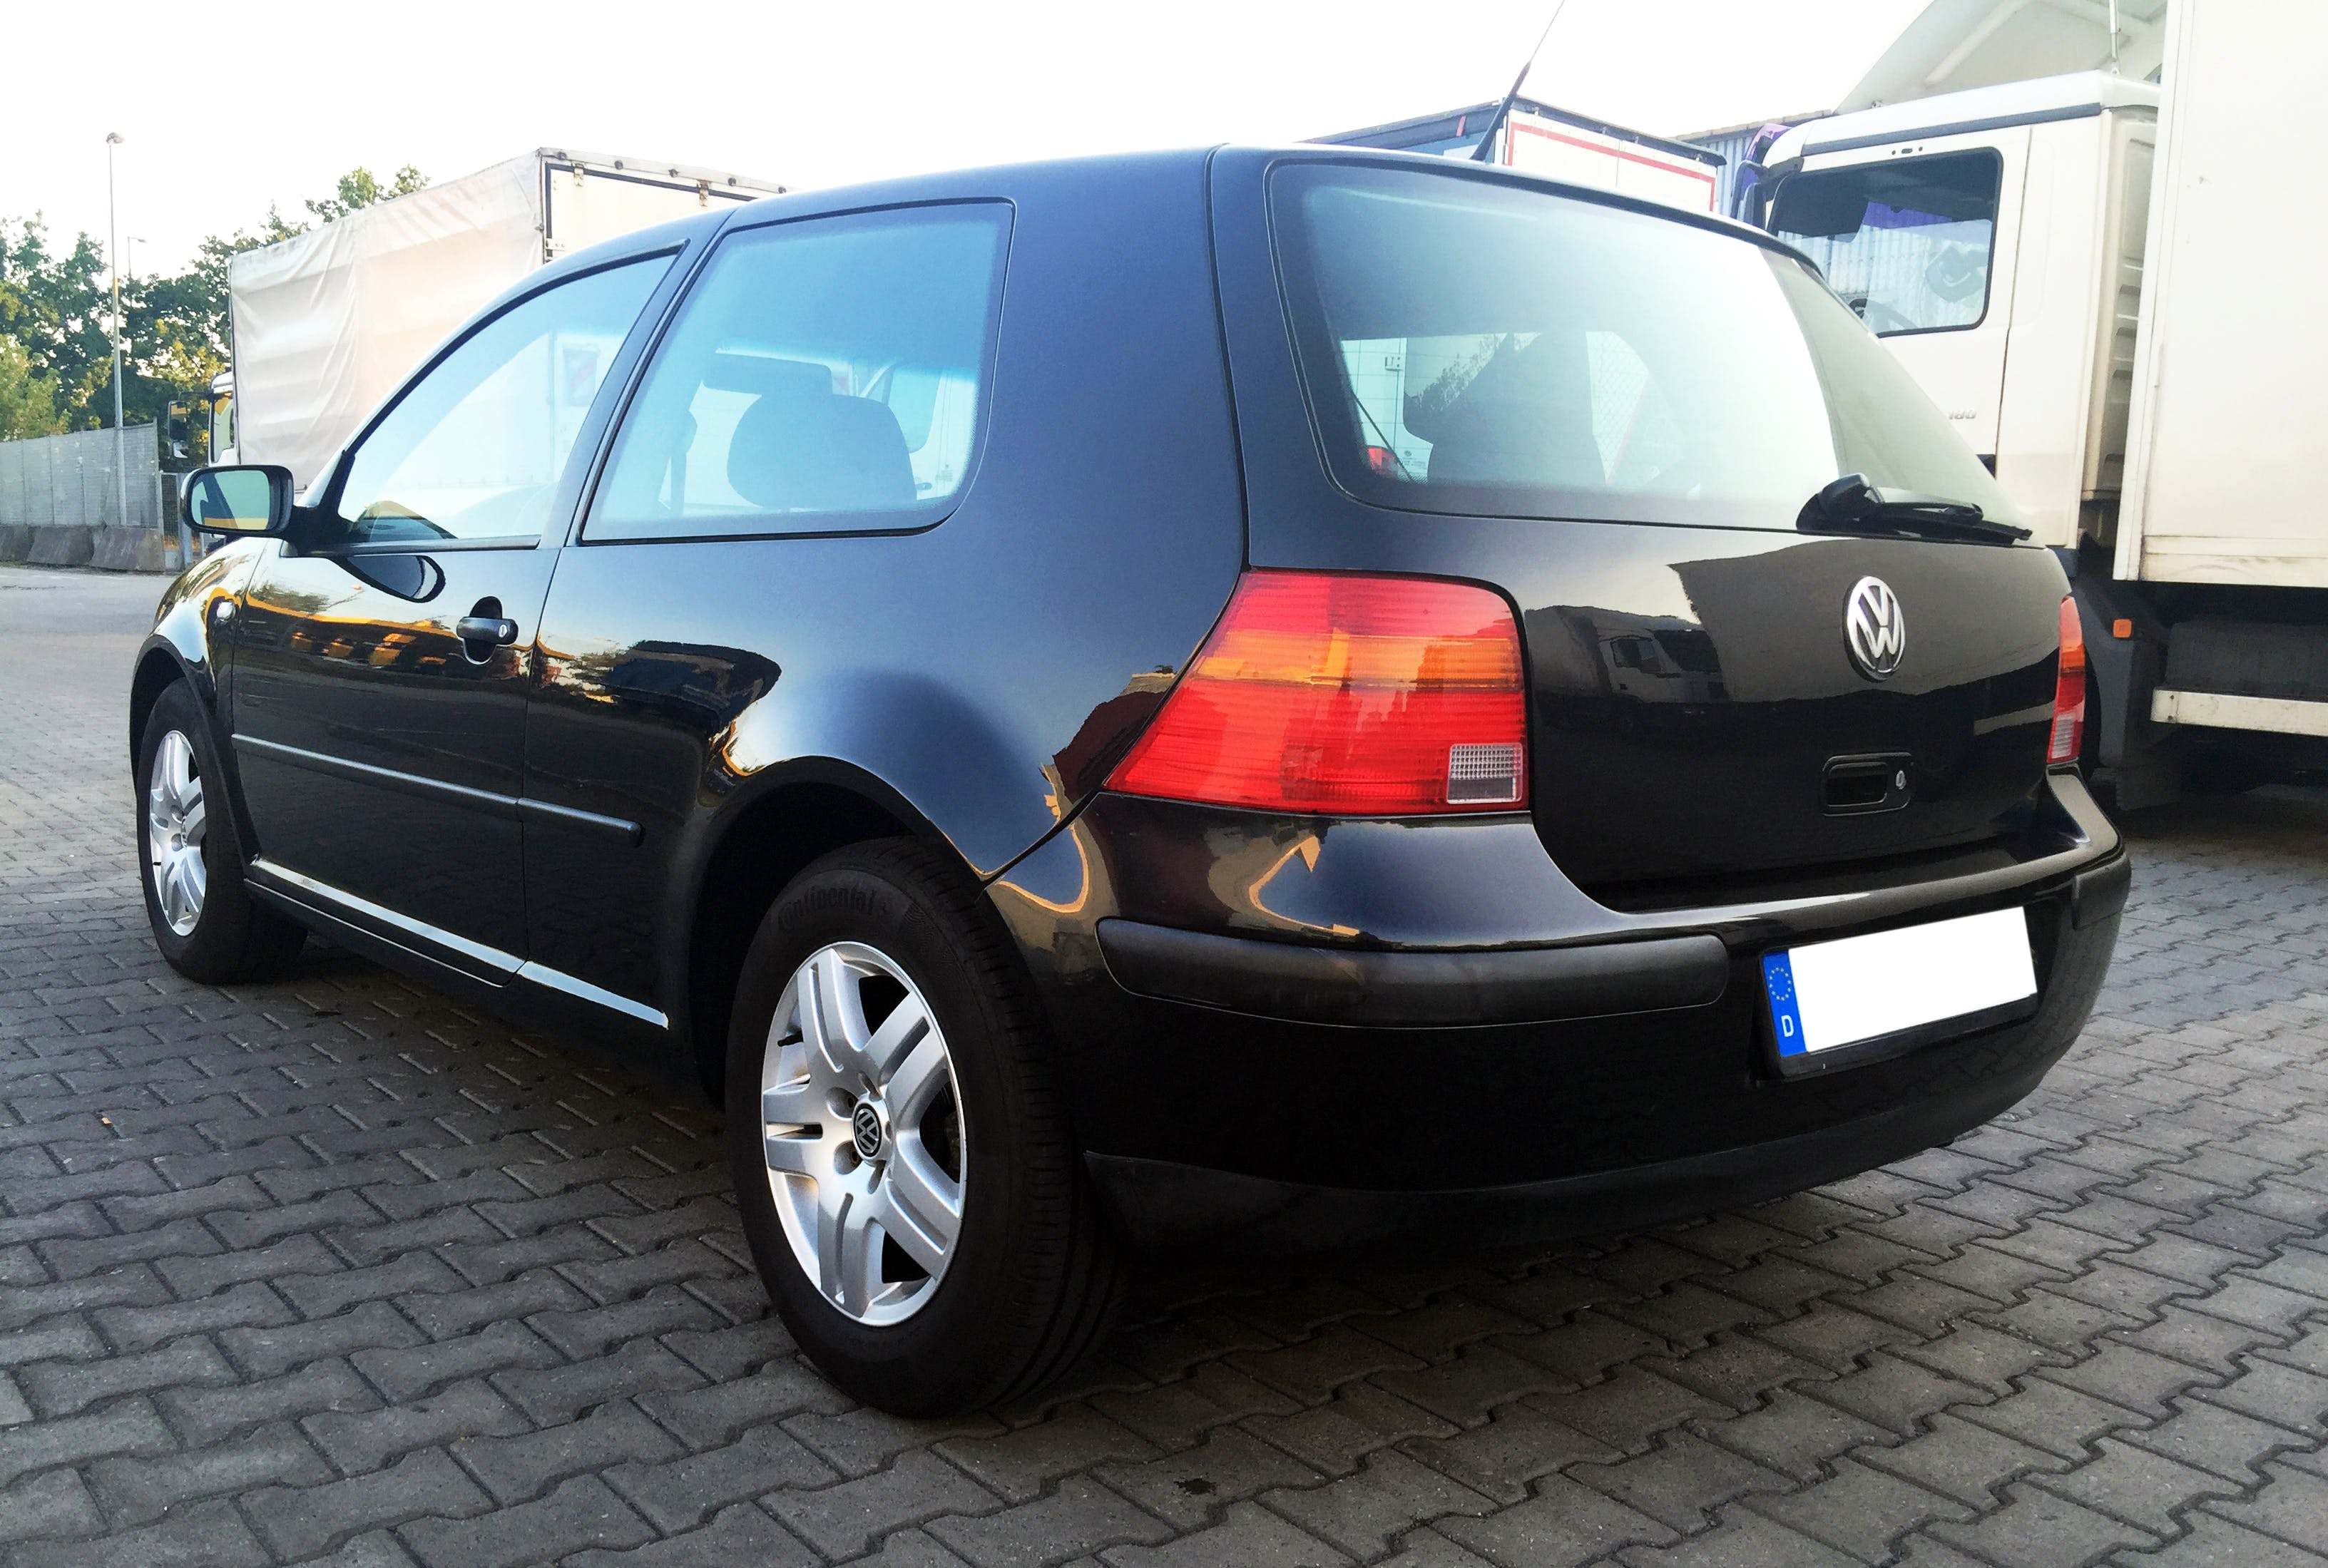 Volkswagen Golf 4 mit CD-Player